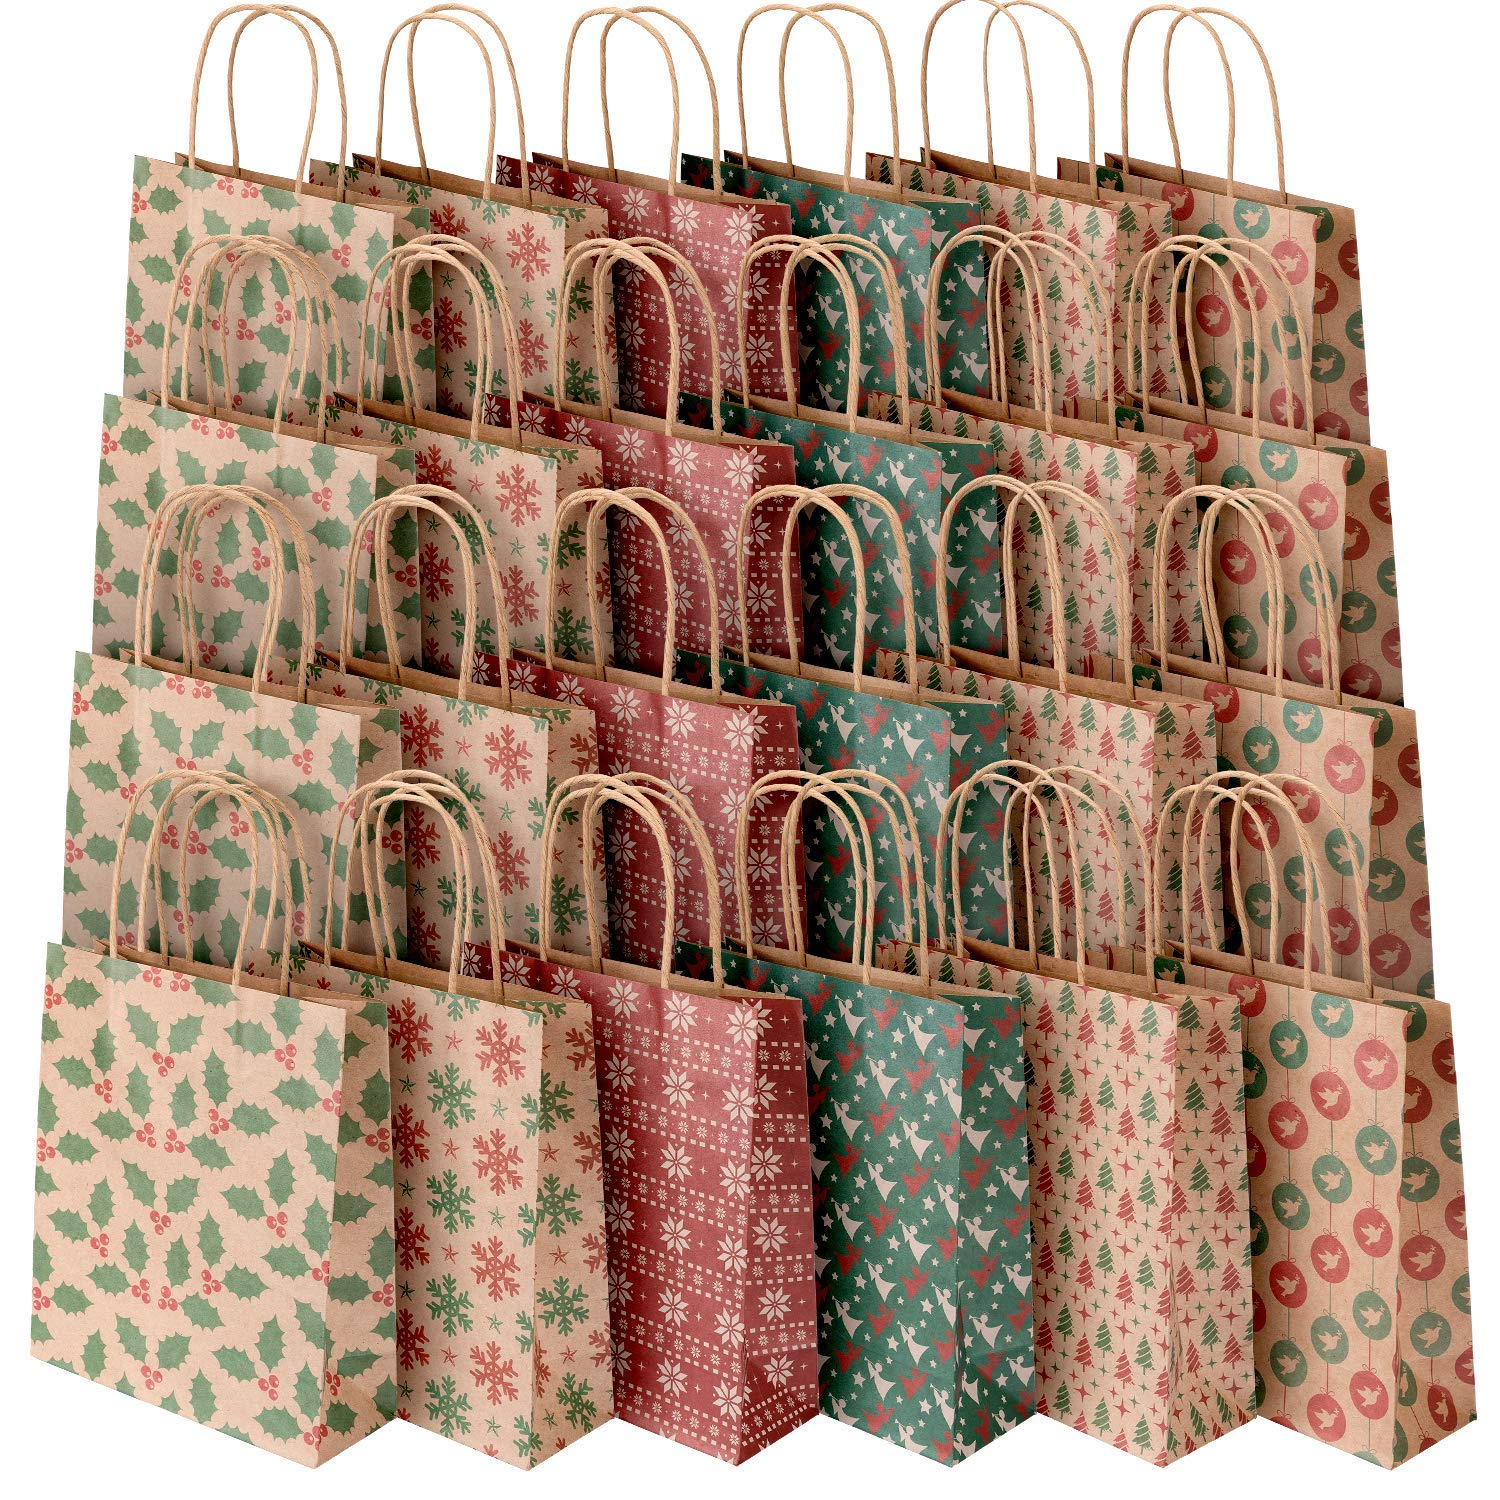 Sumille Paper Gift Bags, Set of 24 Medium Handle Bags for Shopping, Party, Wedding, Business, Craft, Ornaments, Presents, 9x7.3x3.3 inch (12 Pack Kraft Bags +12 Pack White Paper Bag) (Printed)